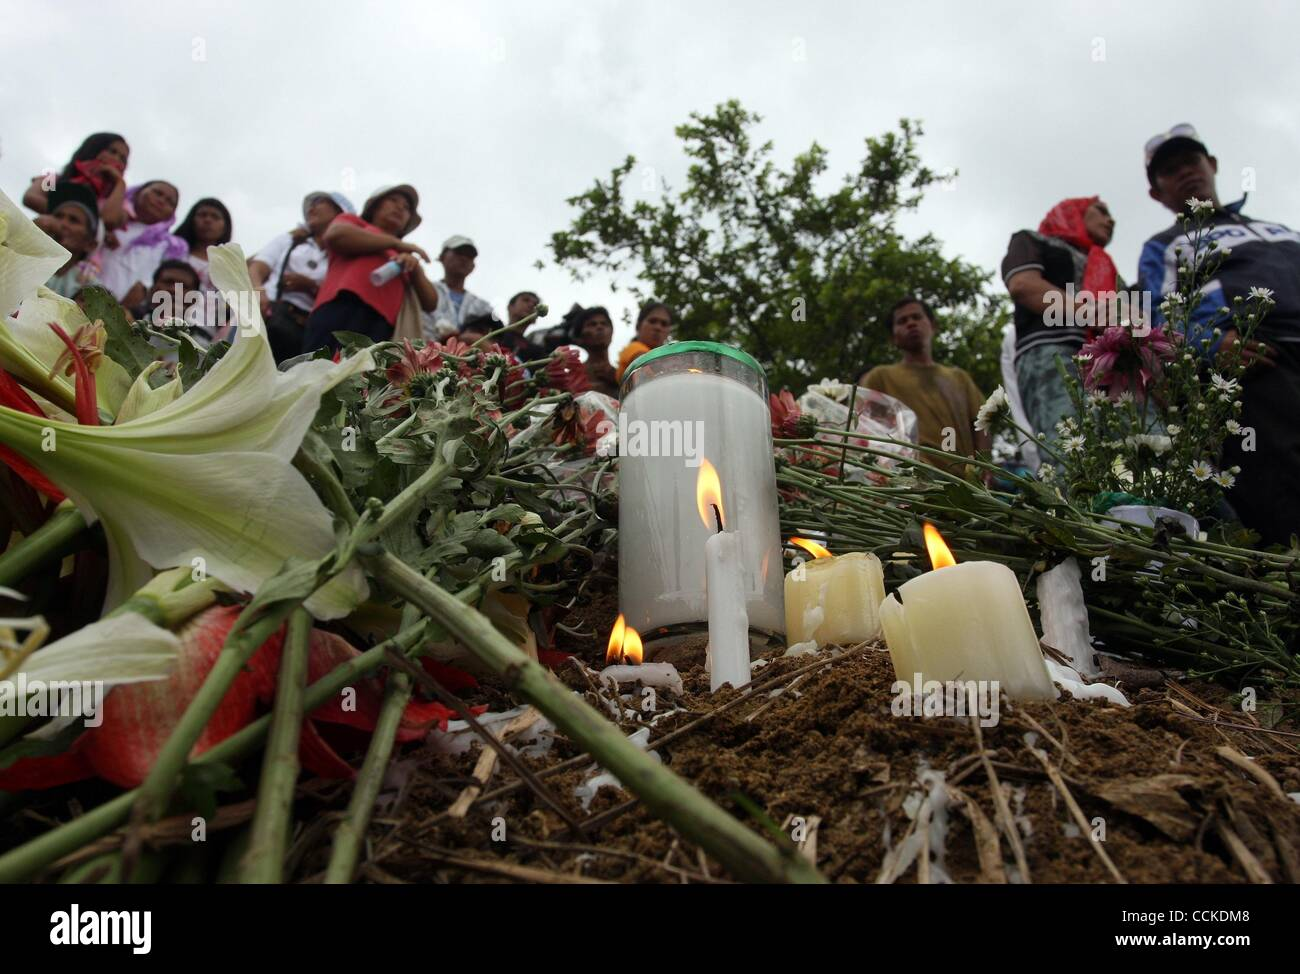 Nov 23, 2010 - Maguindanao , Philippines - Families, relatives, friends and militants light candles and offer flowers - Stock Image